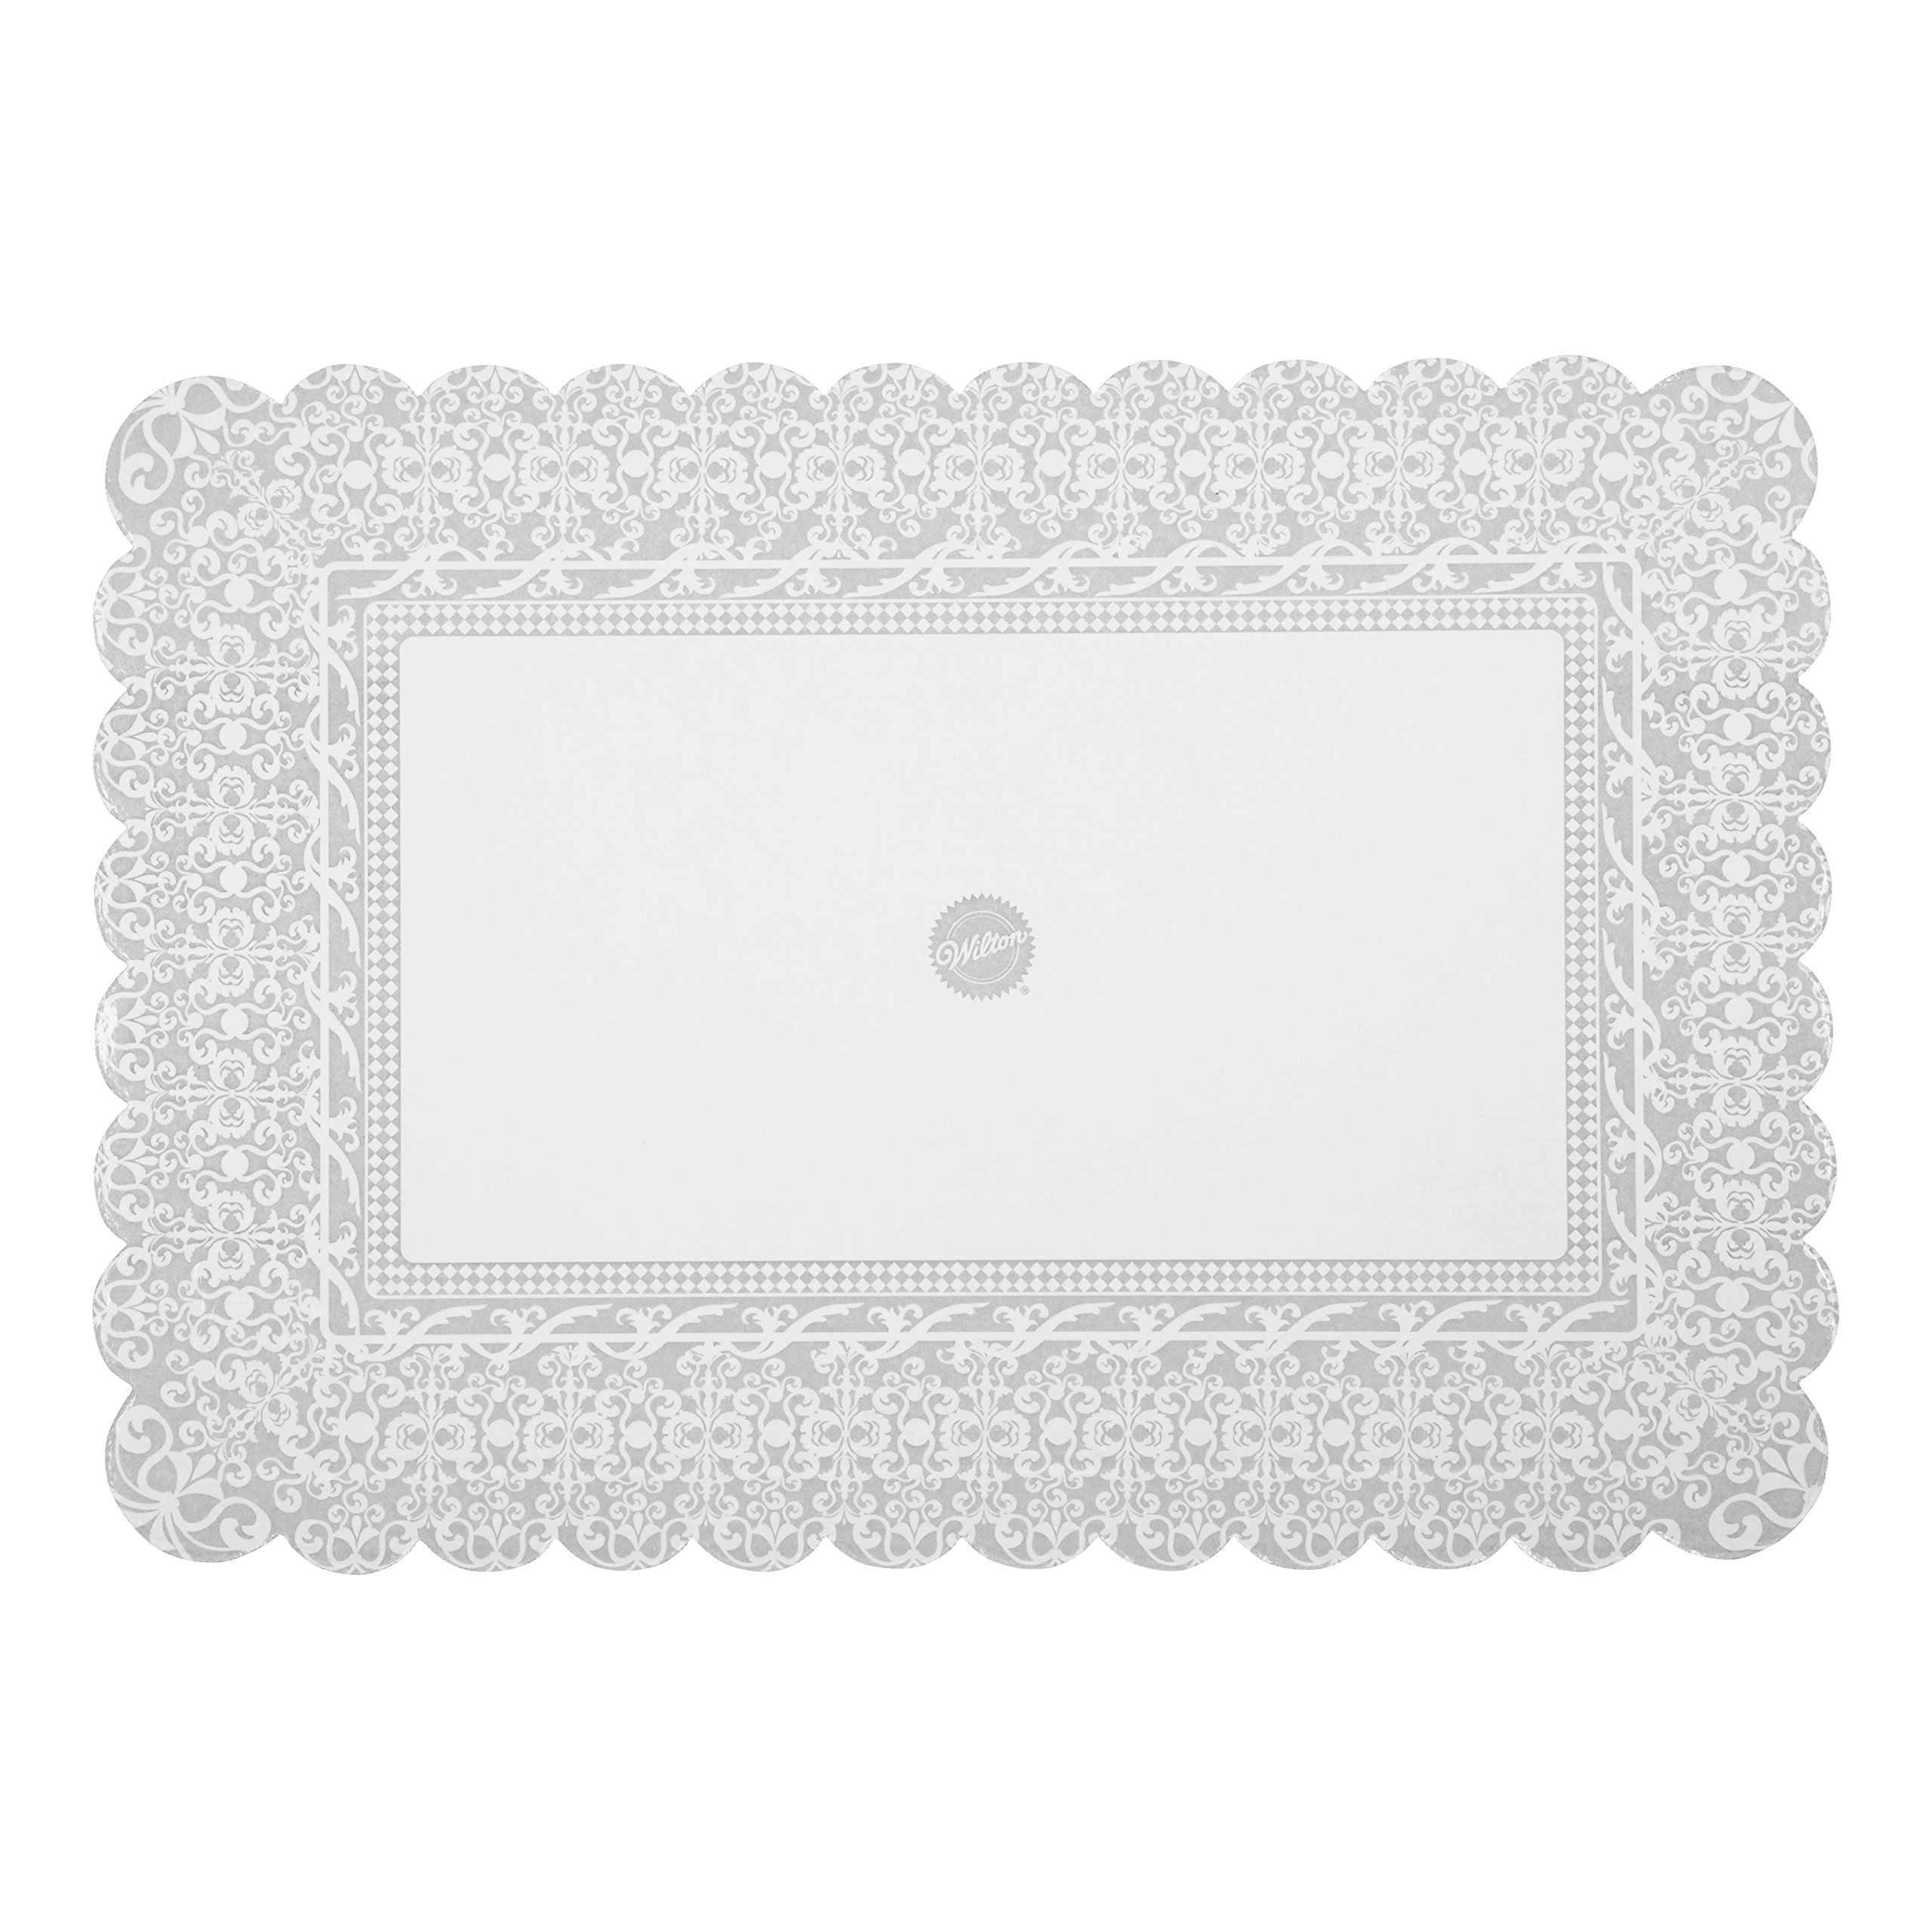 Wilton Show 'N' Serve Cake Boards, Set of 6 Patterned Rectangle Cake Boards for 12 x 18-Inch Cakes